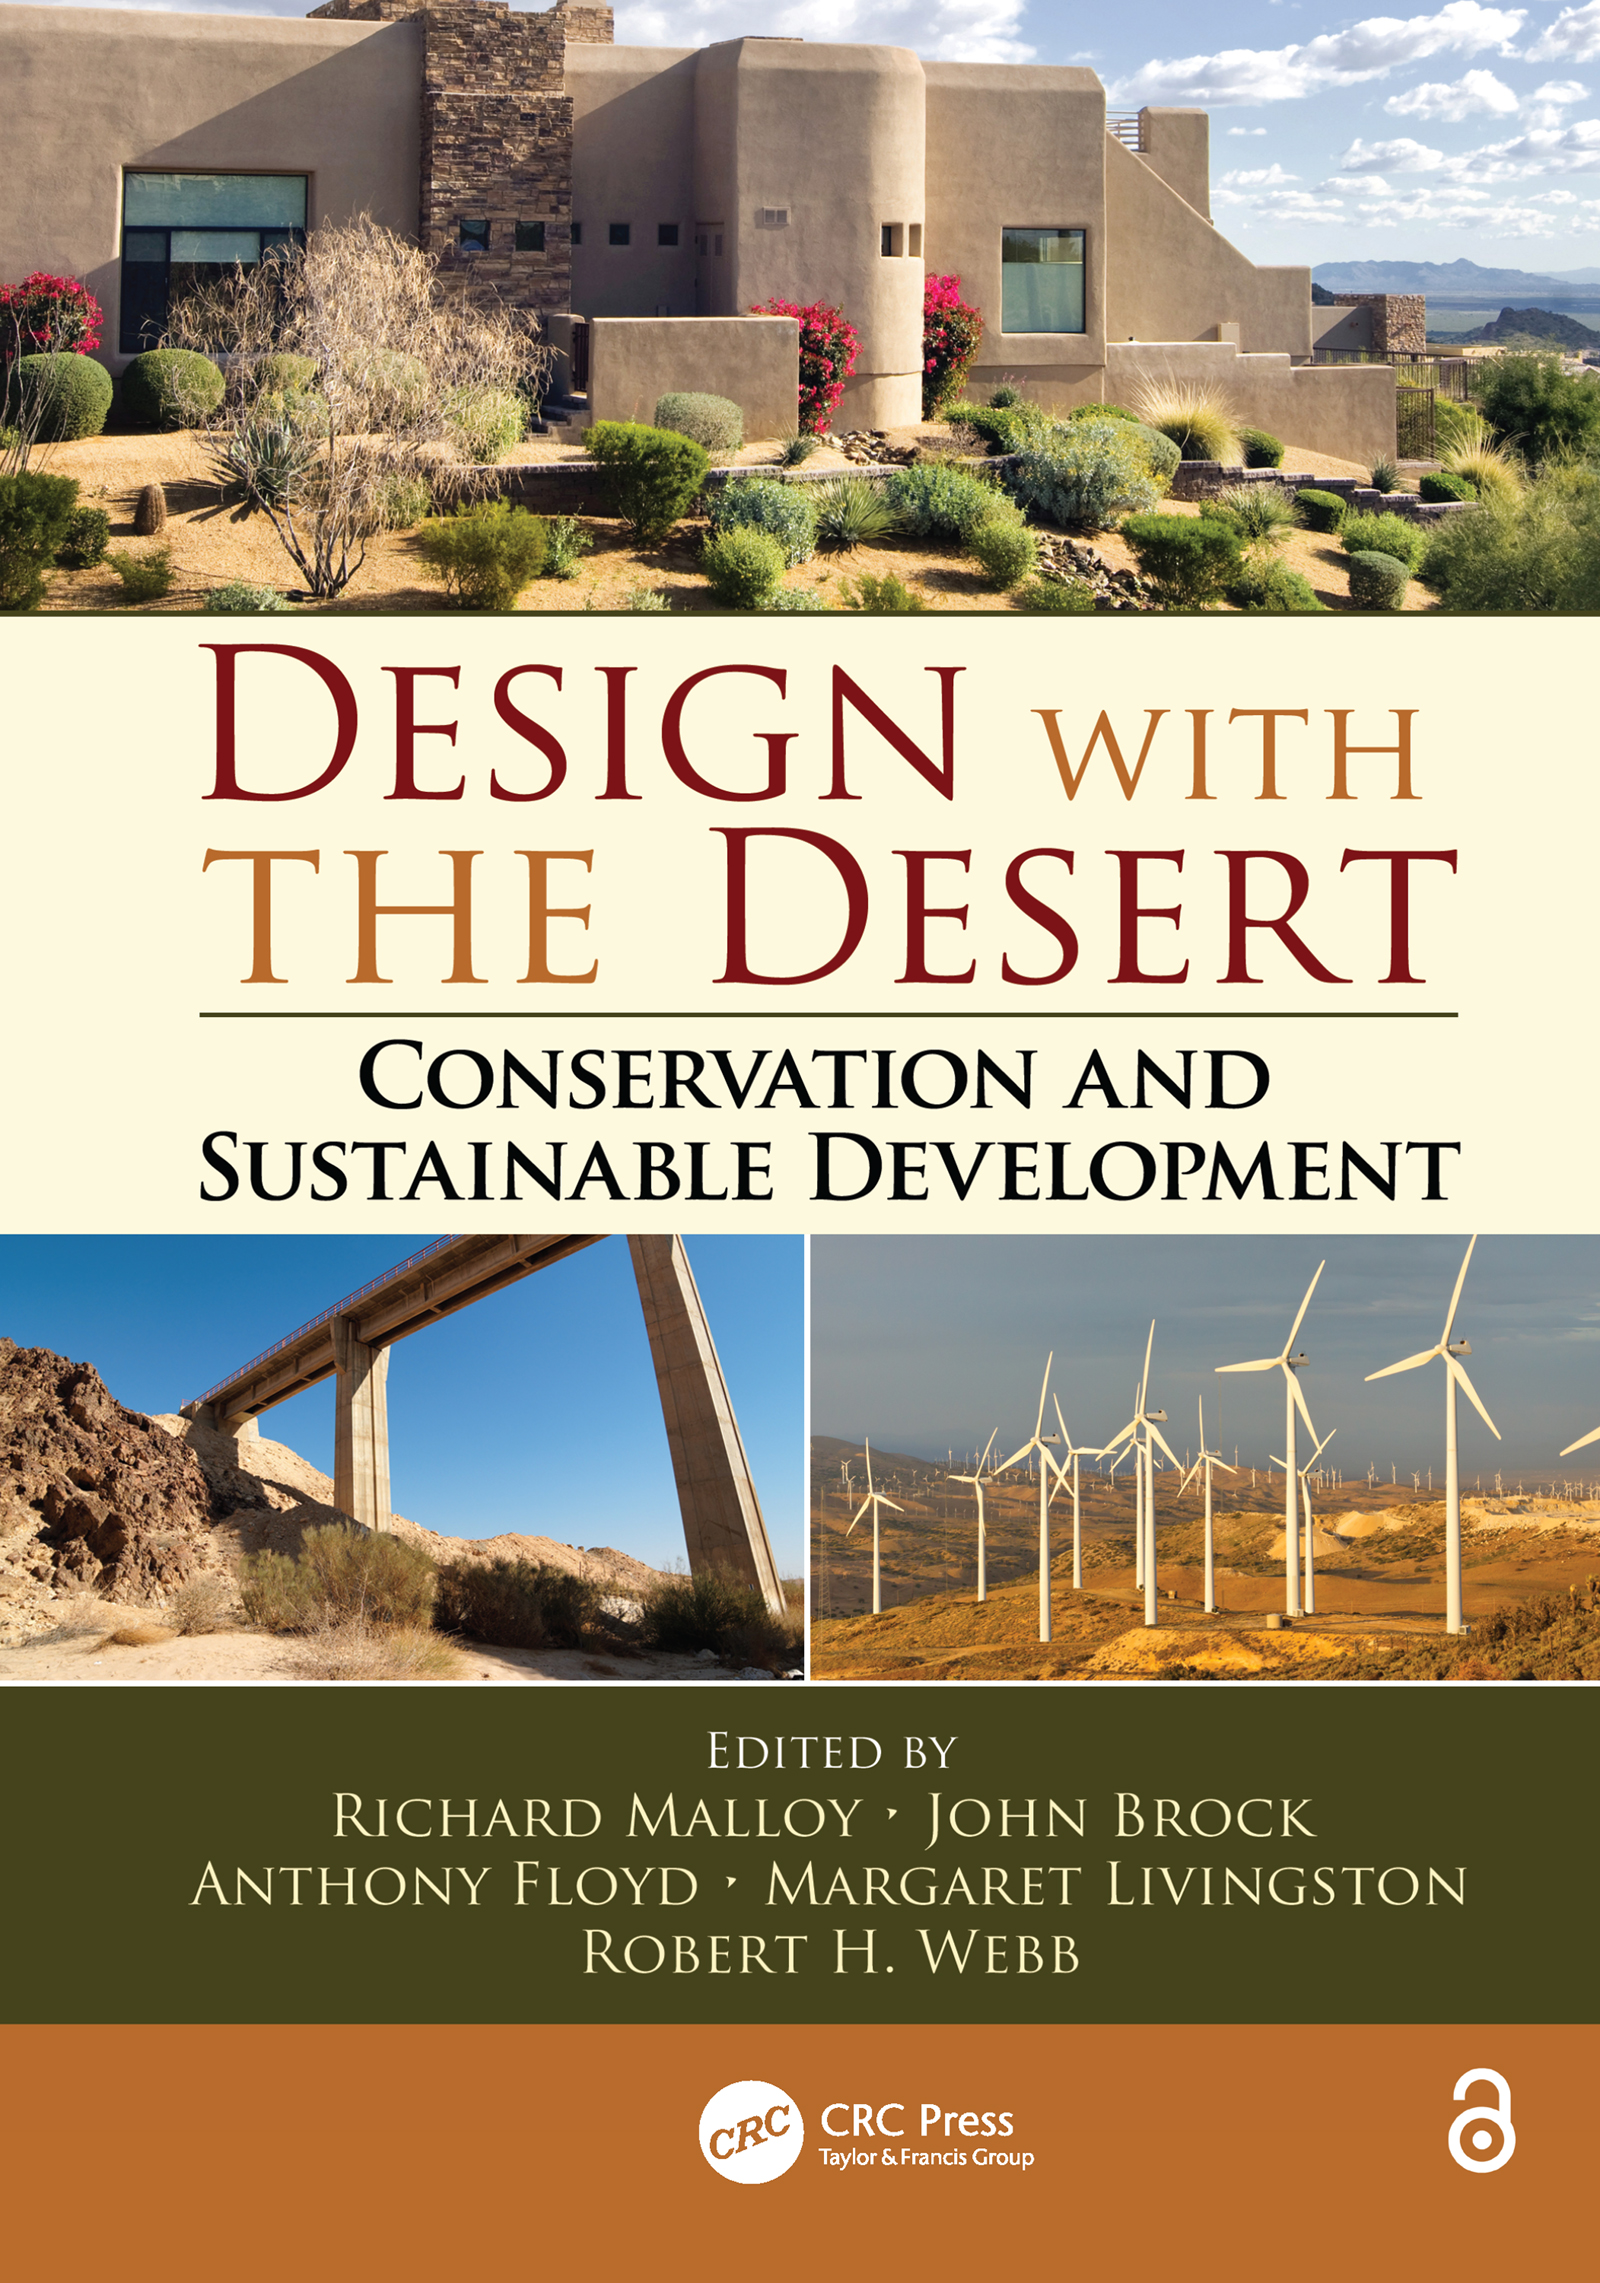 Removable and Place-Based Economies: Alternative Futures for America's Deserts